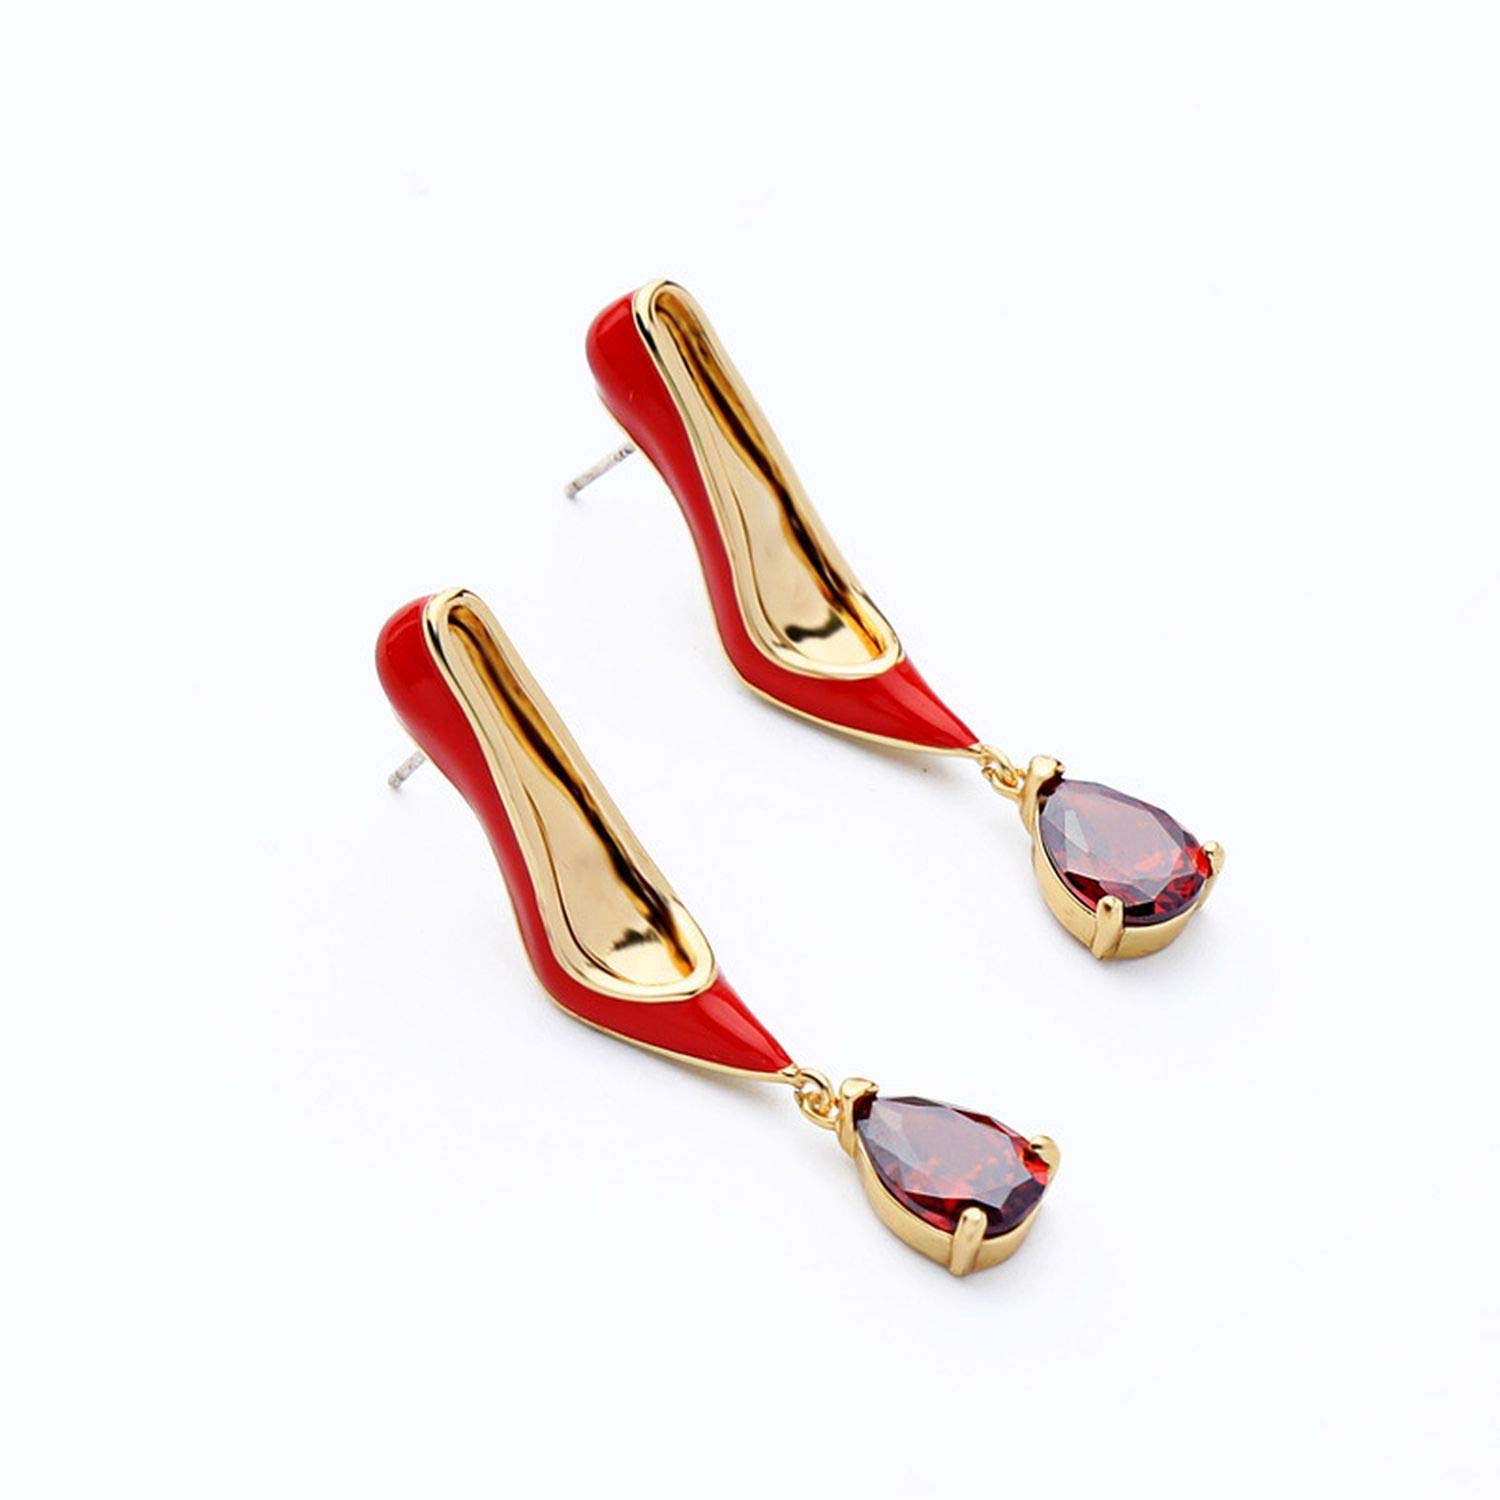 Jewelry Cooper Enamel Red High Heel Shoes Drop Earring Piercing Earring Jewelry